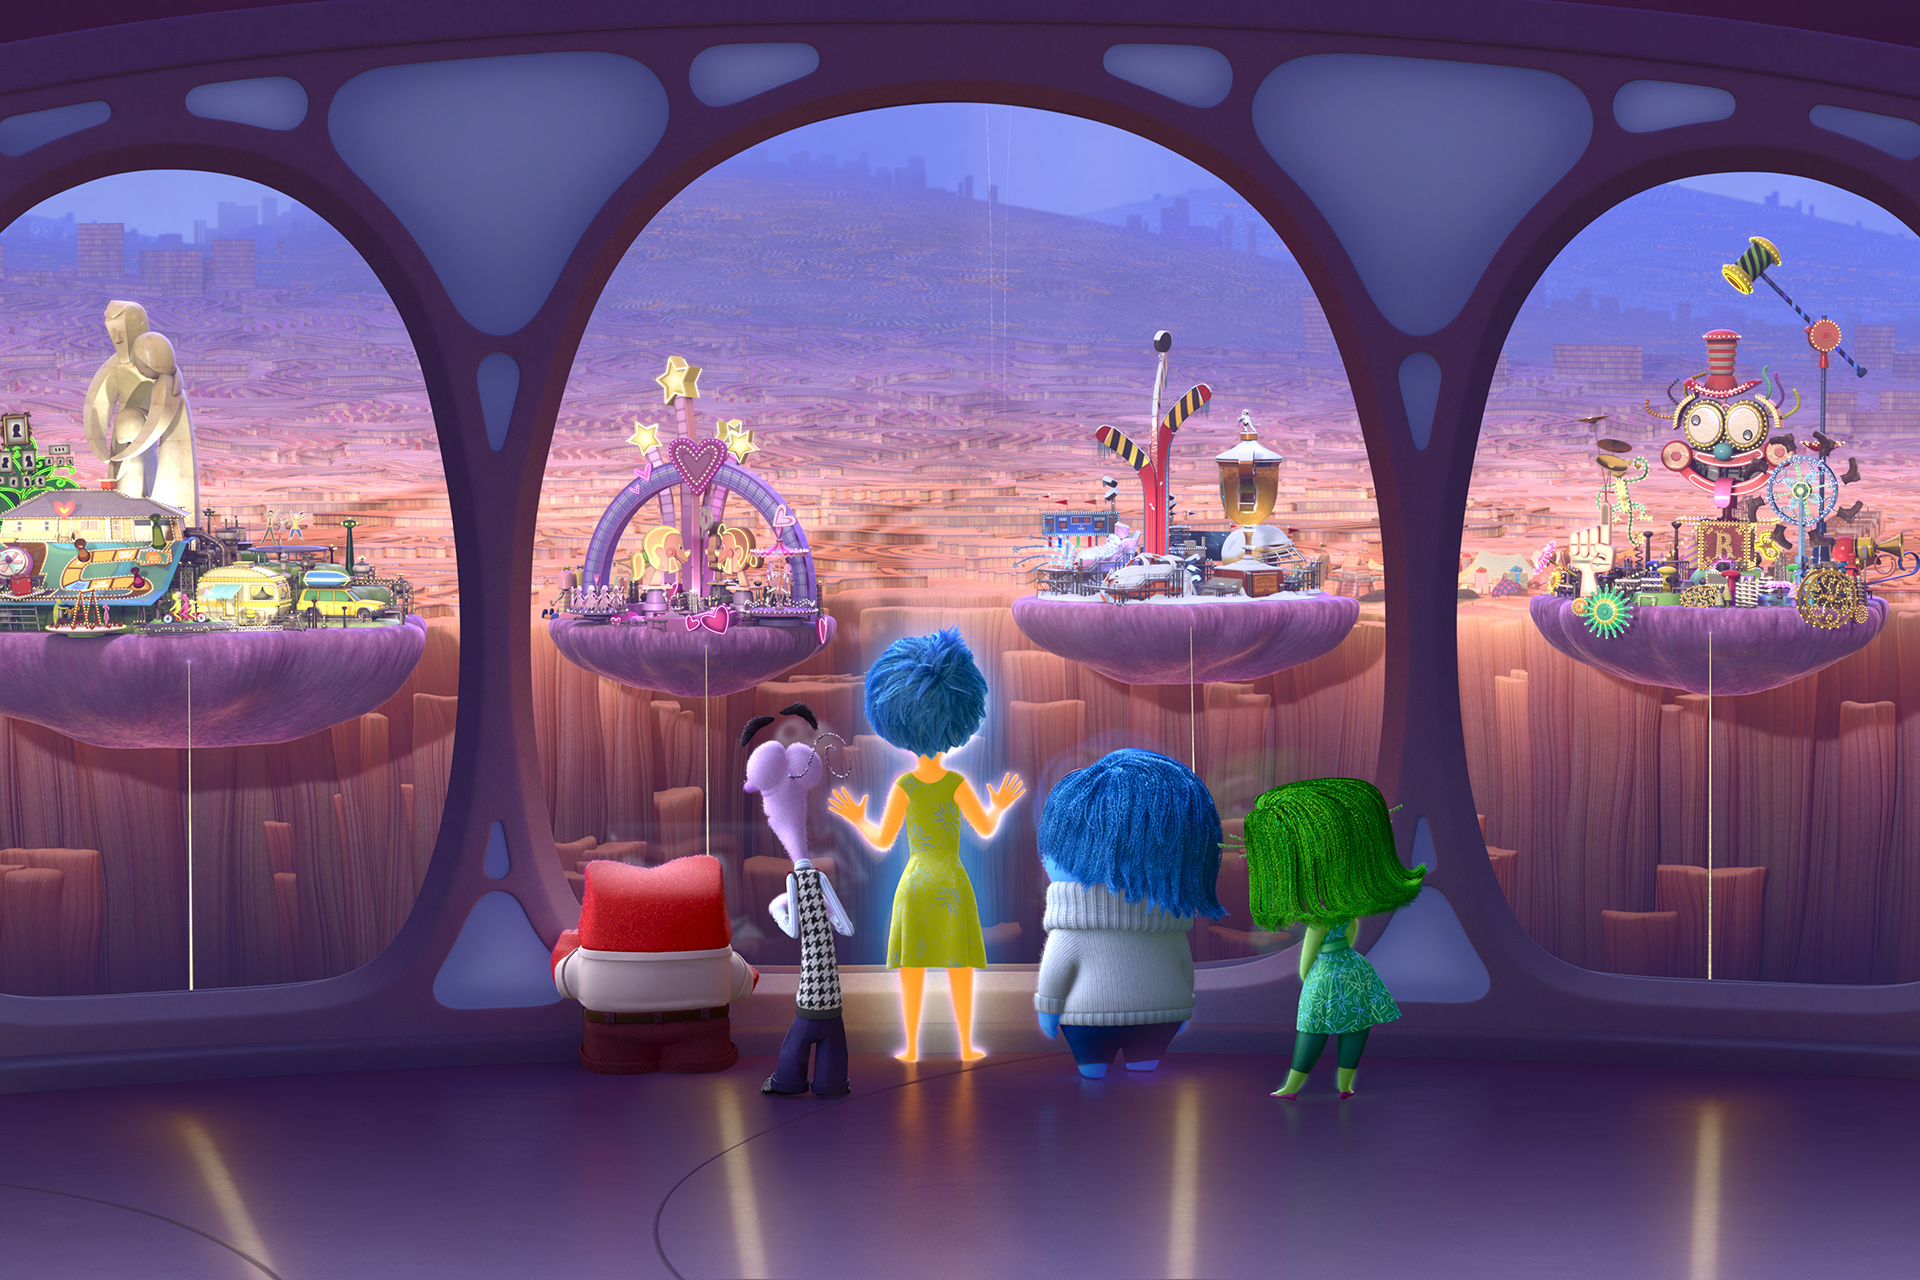 Inside out characters picture inside out characters image for Inside movie